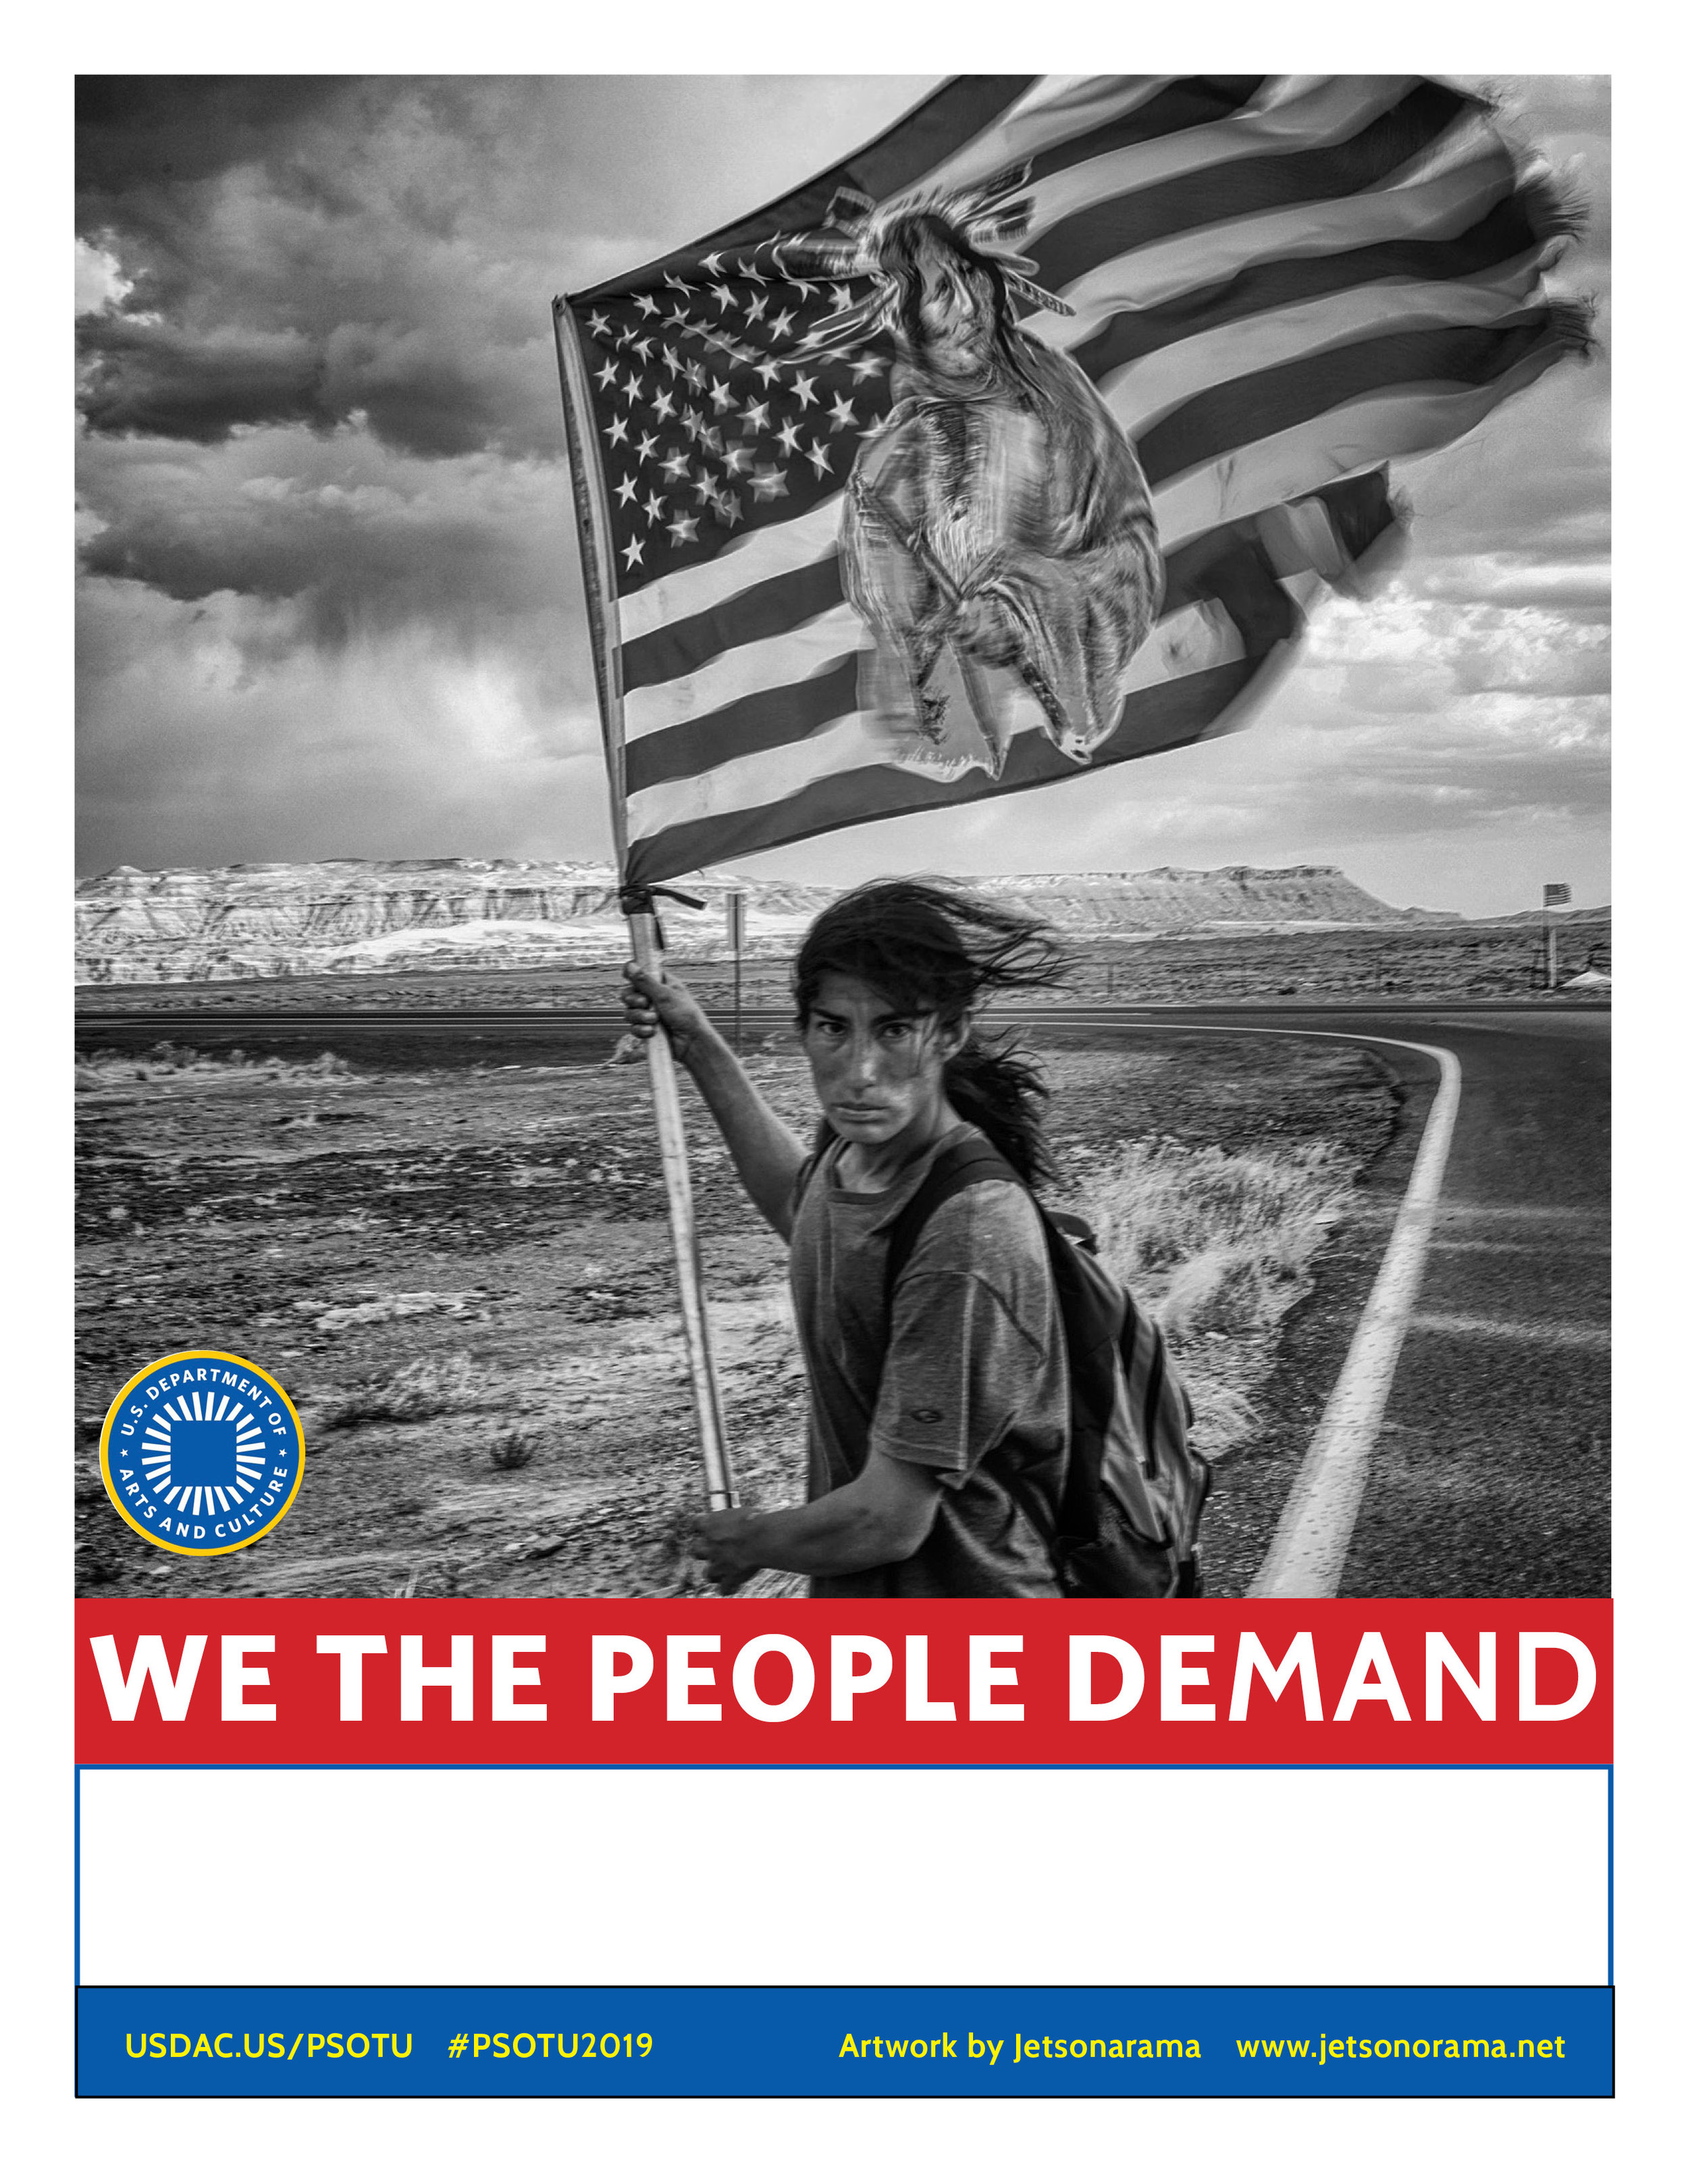 We the people jetsonarama 11-20-18.jpg